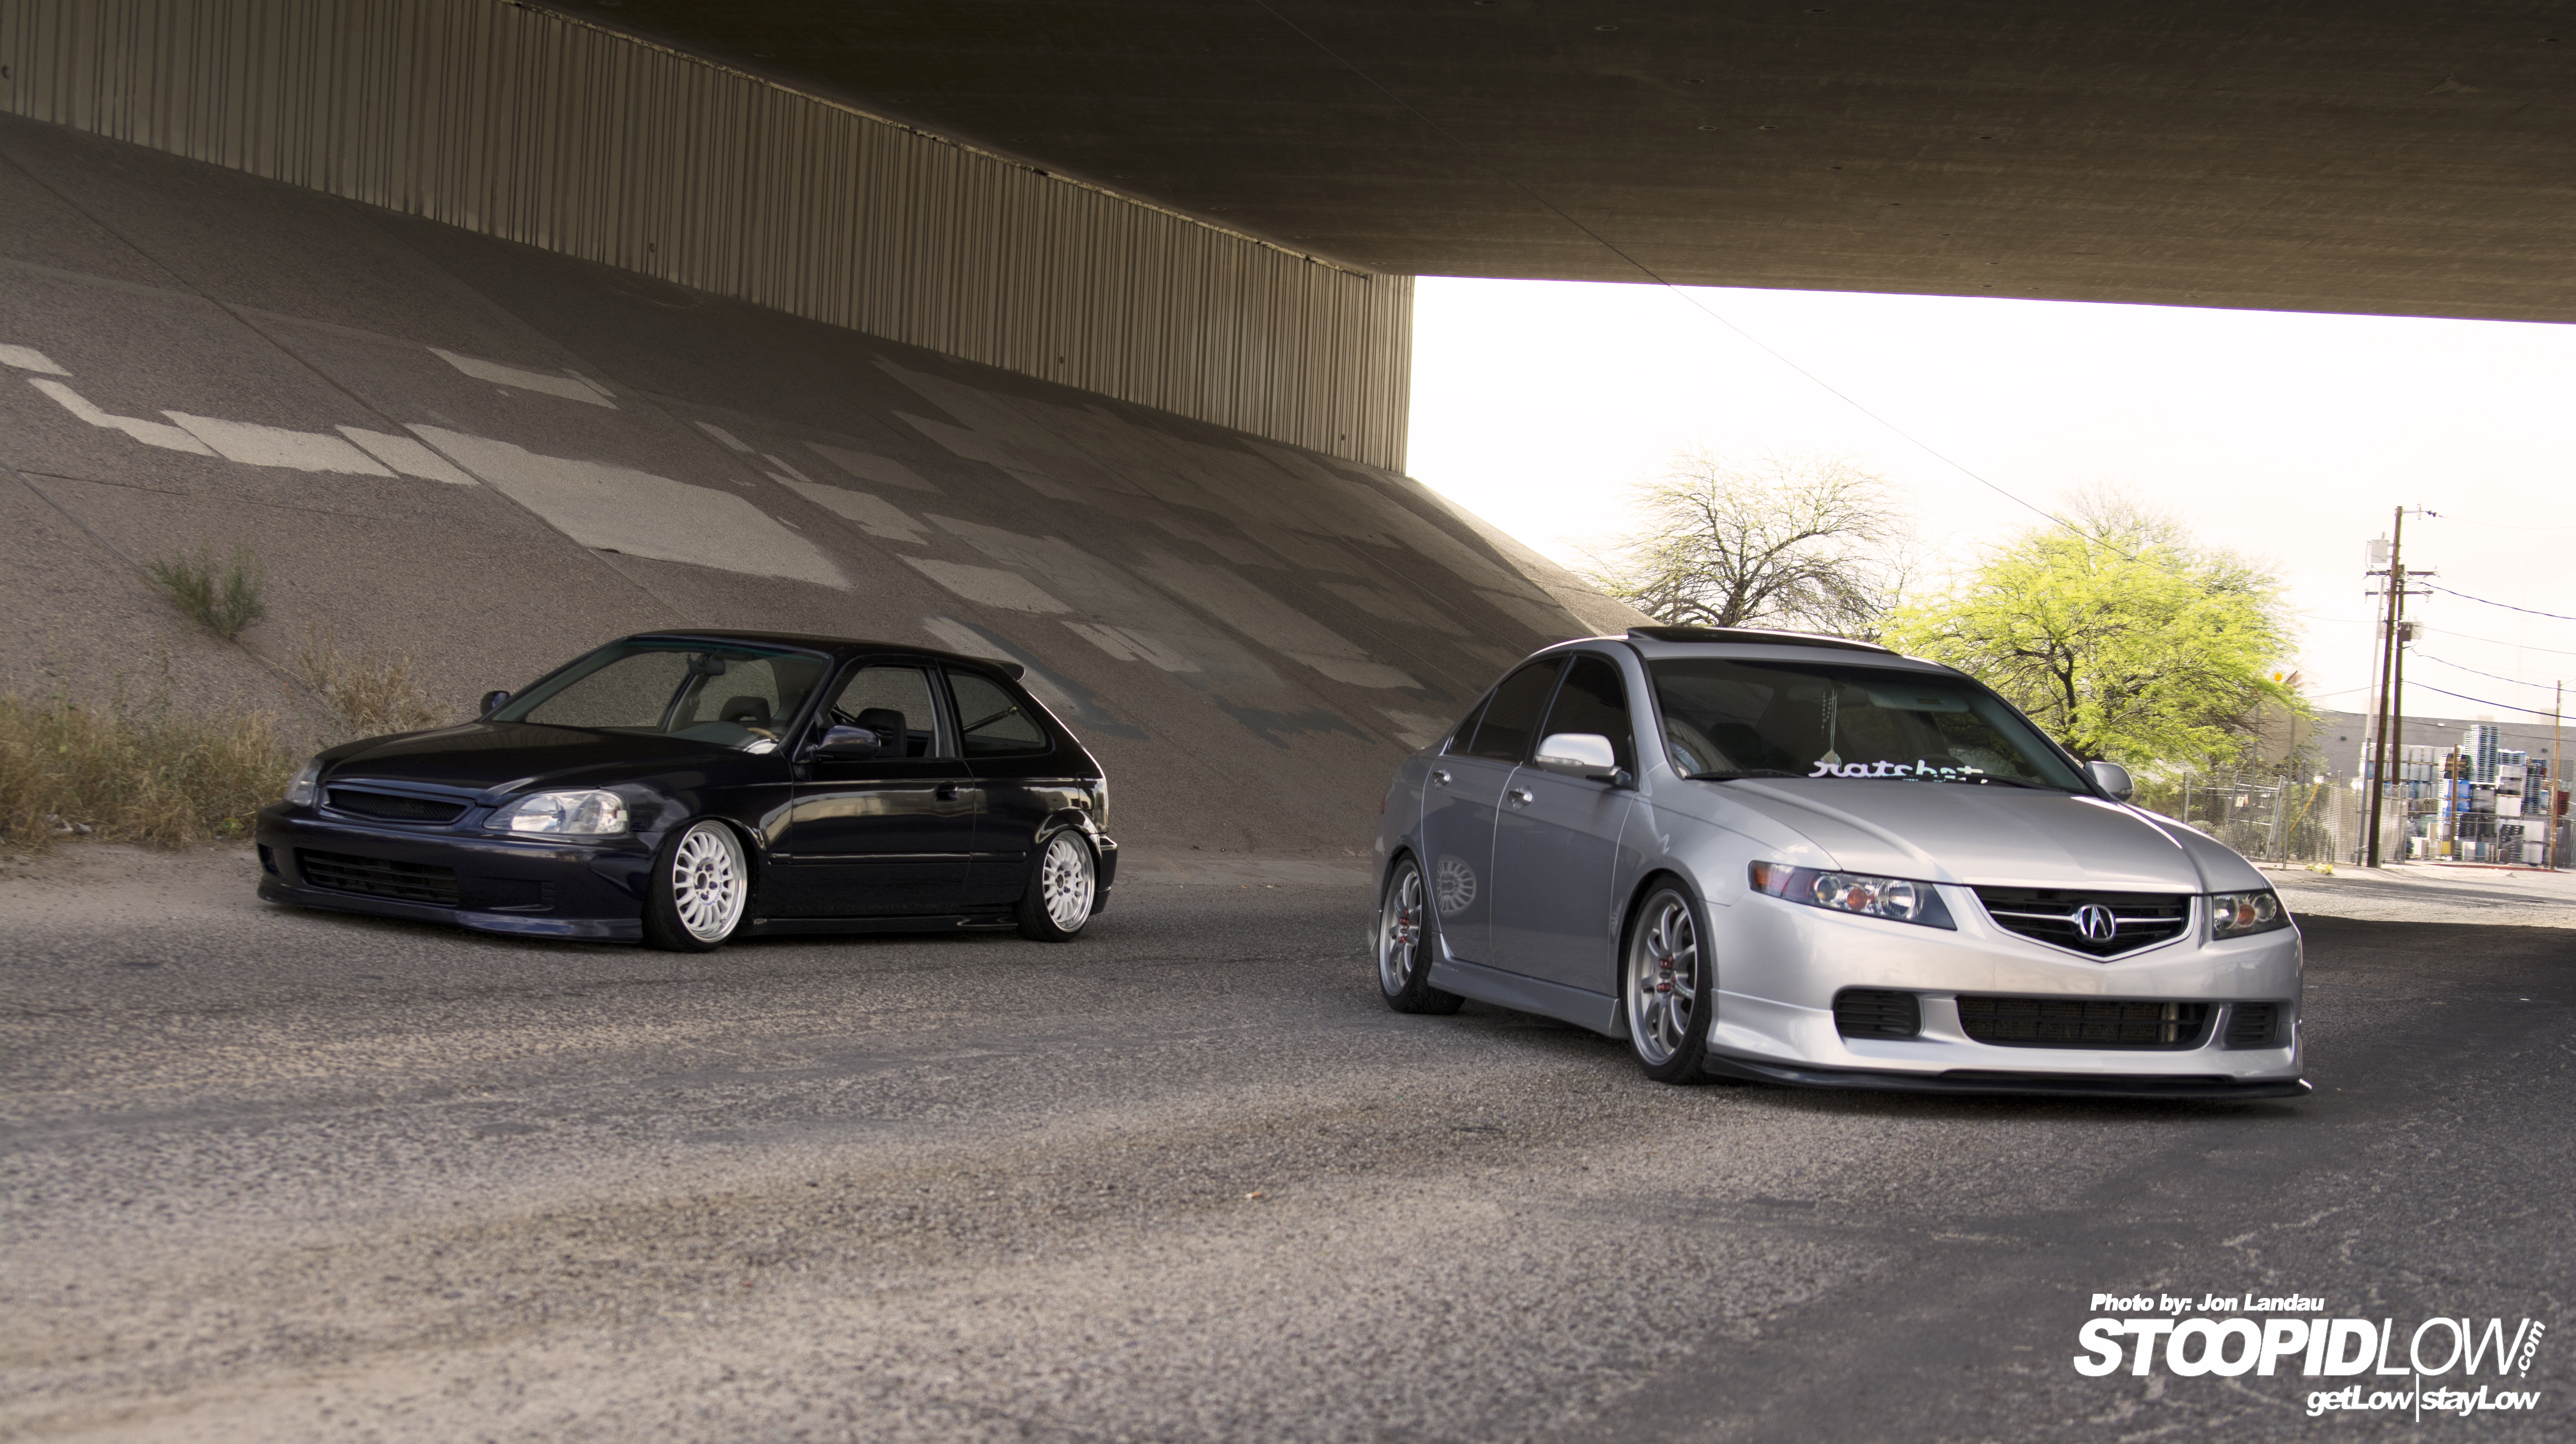 Straight To The Point Chriss Acura TSX StoopidLow - Acura tsx mods